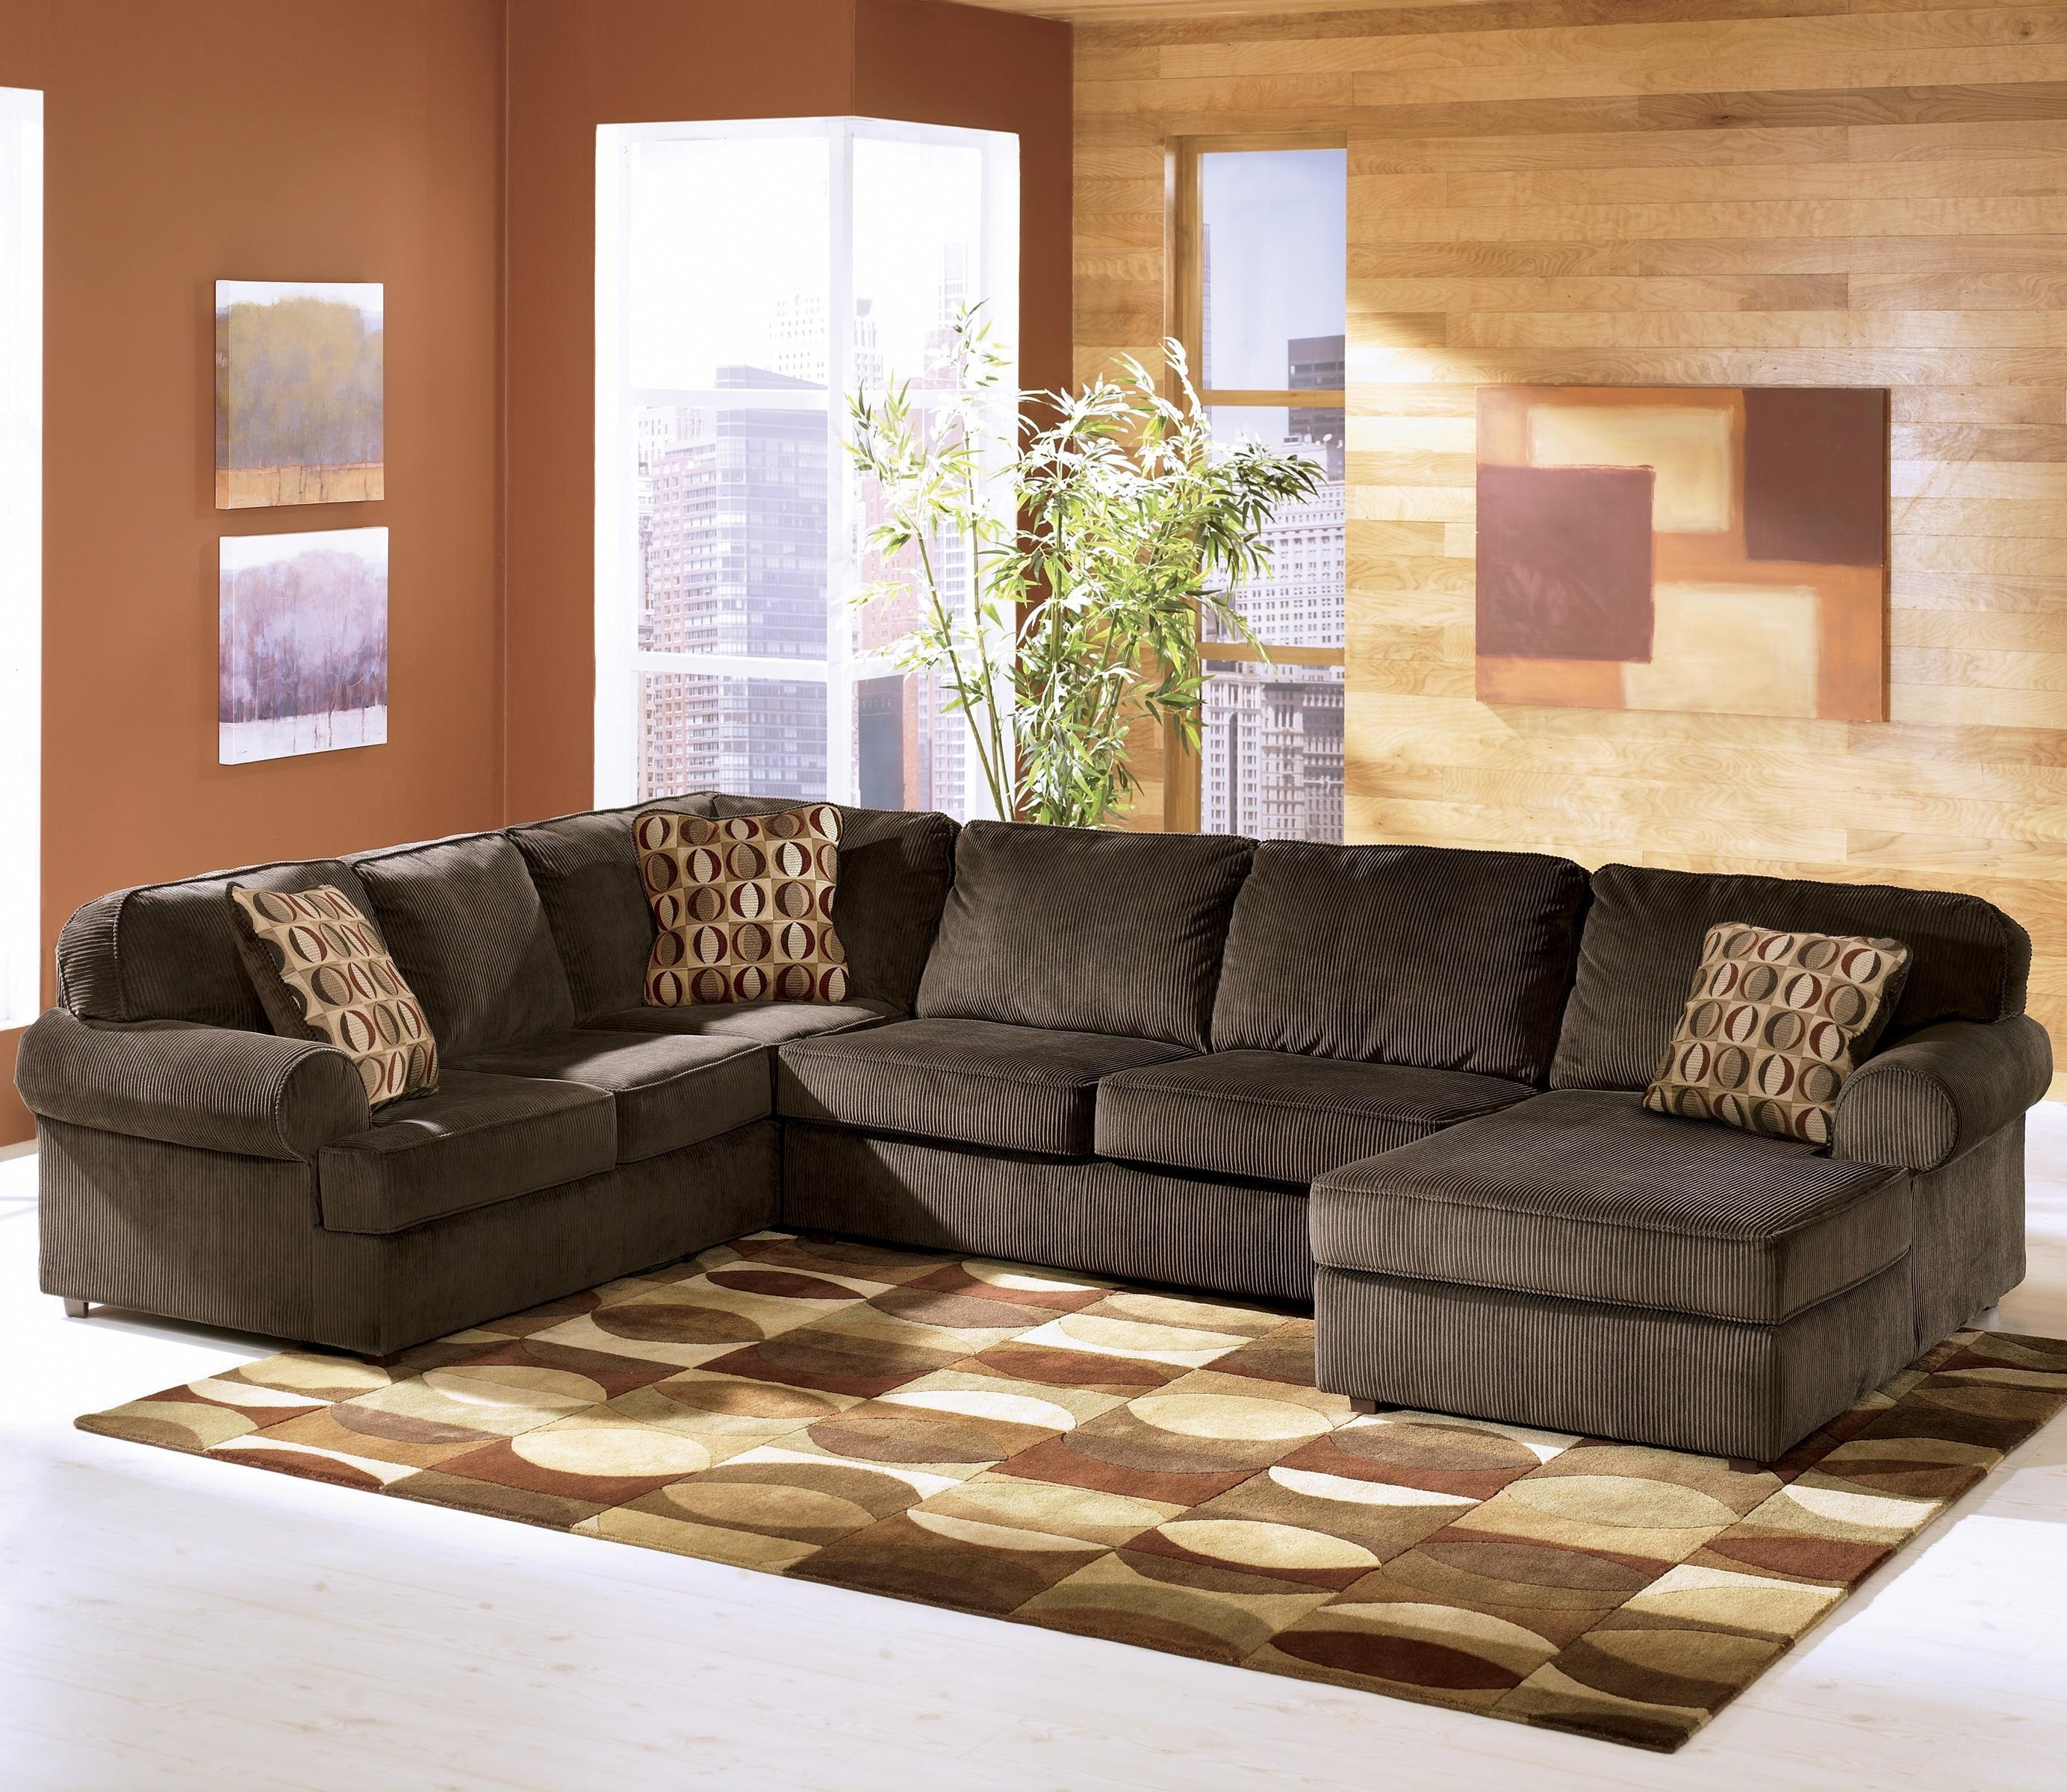 Ashley Furniture Sofa Chaises In Well Known Ashley Furniture Vista – Chocolate Casual 3 Piece Sectional With (View 2 of 15)